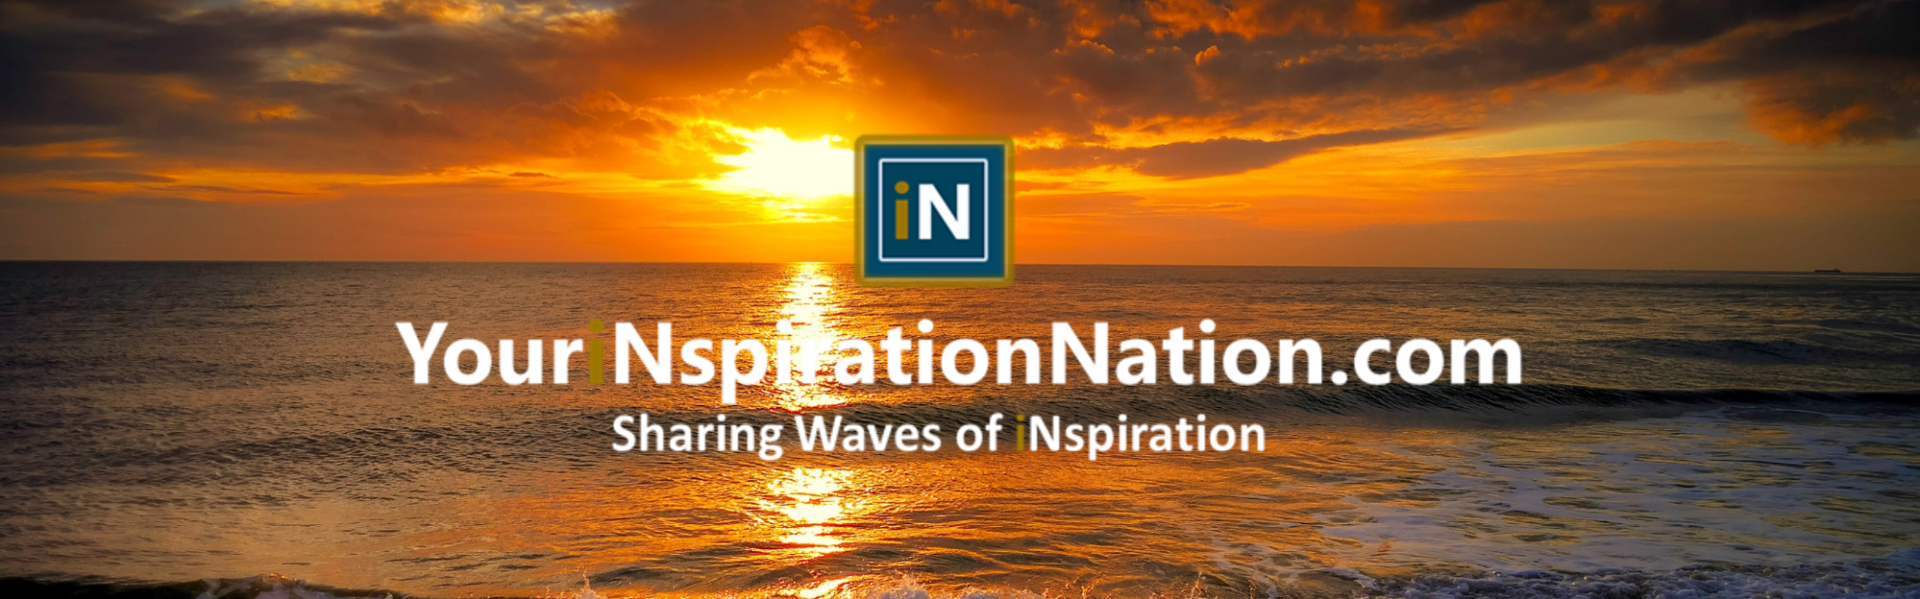 your inspiration nation